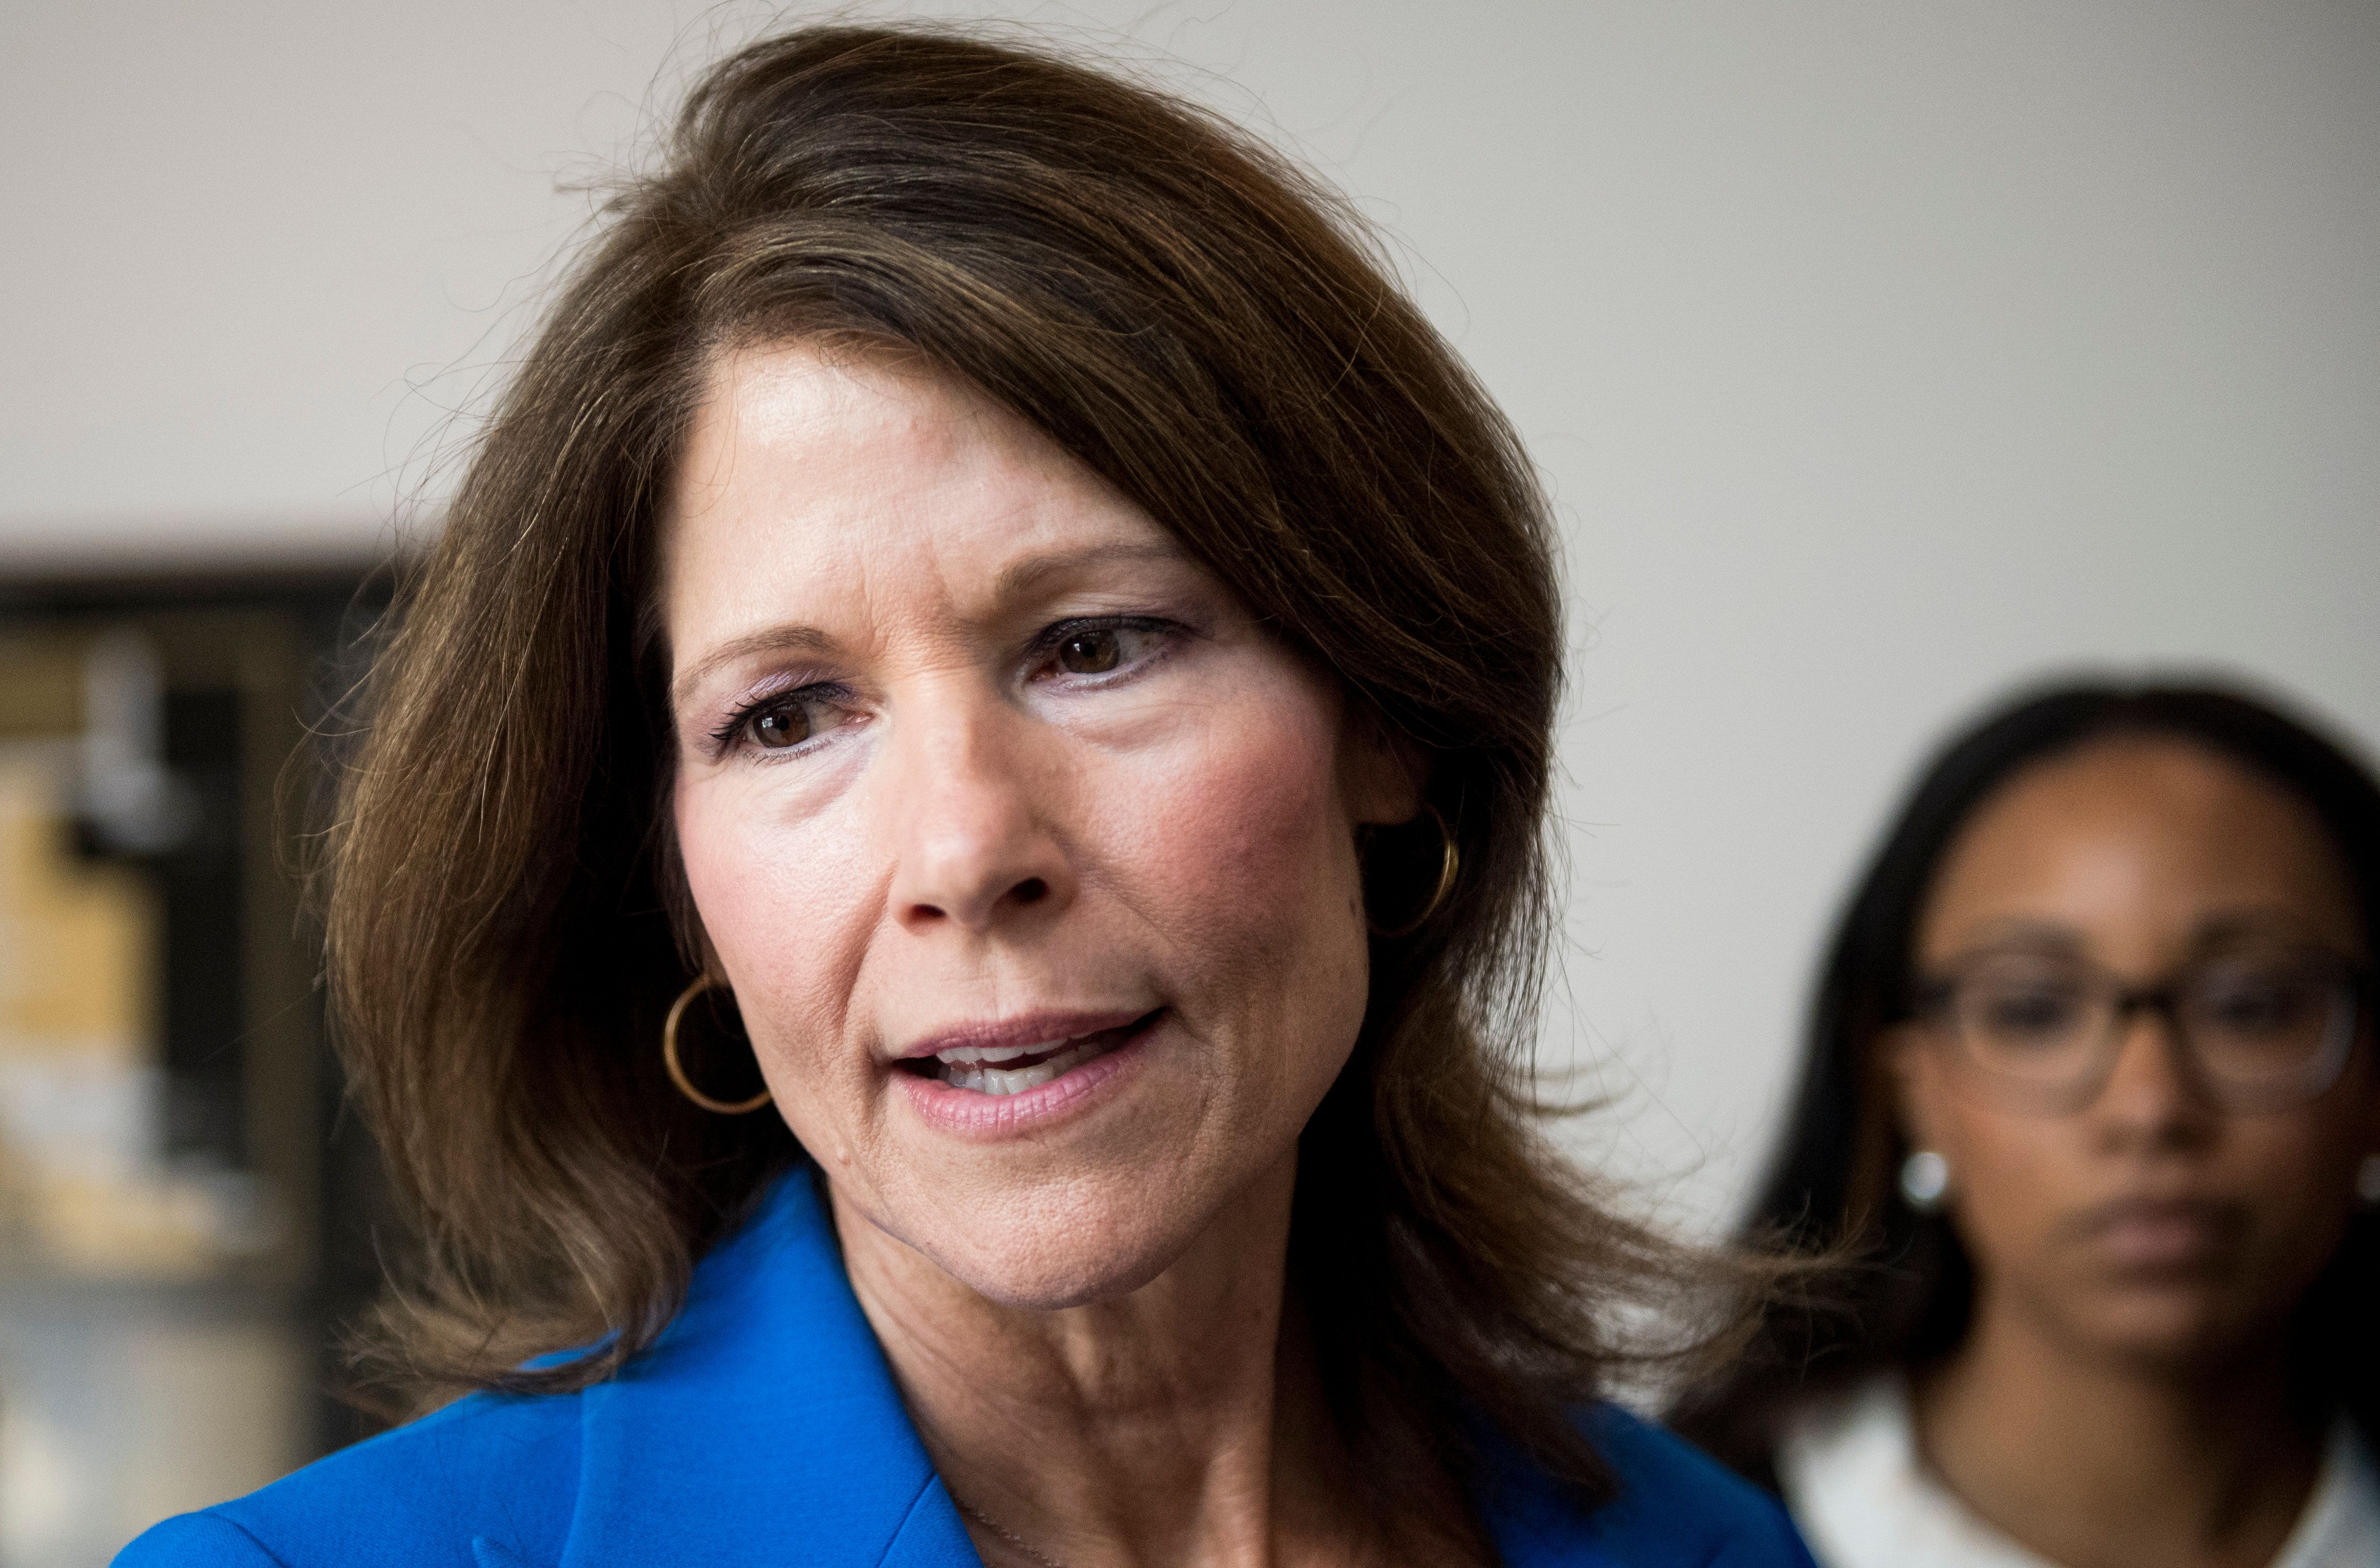 UNITED STATES - OCTOBER 4: Rep. Cheri Bustos, D-Ill., speaks with reporters in the Capitol on Thursday, Oct. 4, 2018. (Photo By Bill Clark/CQ Roll Call)